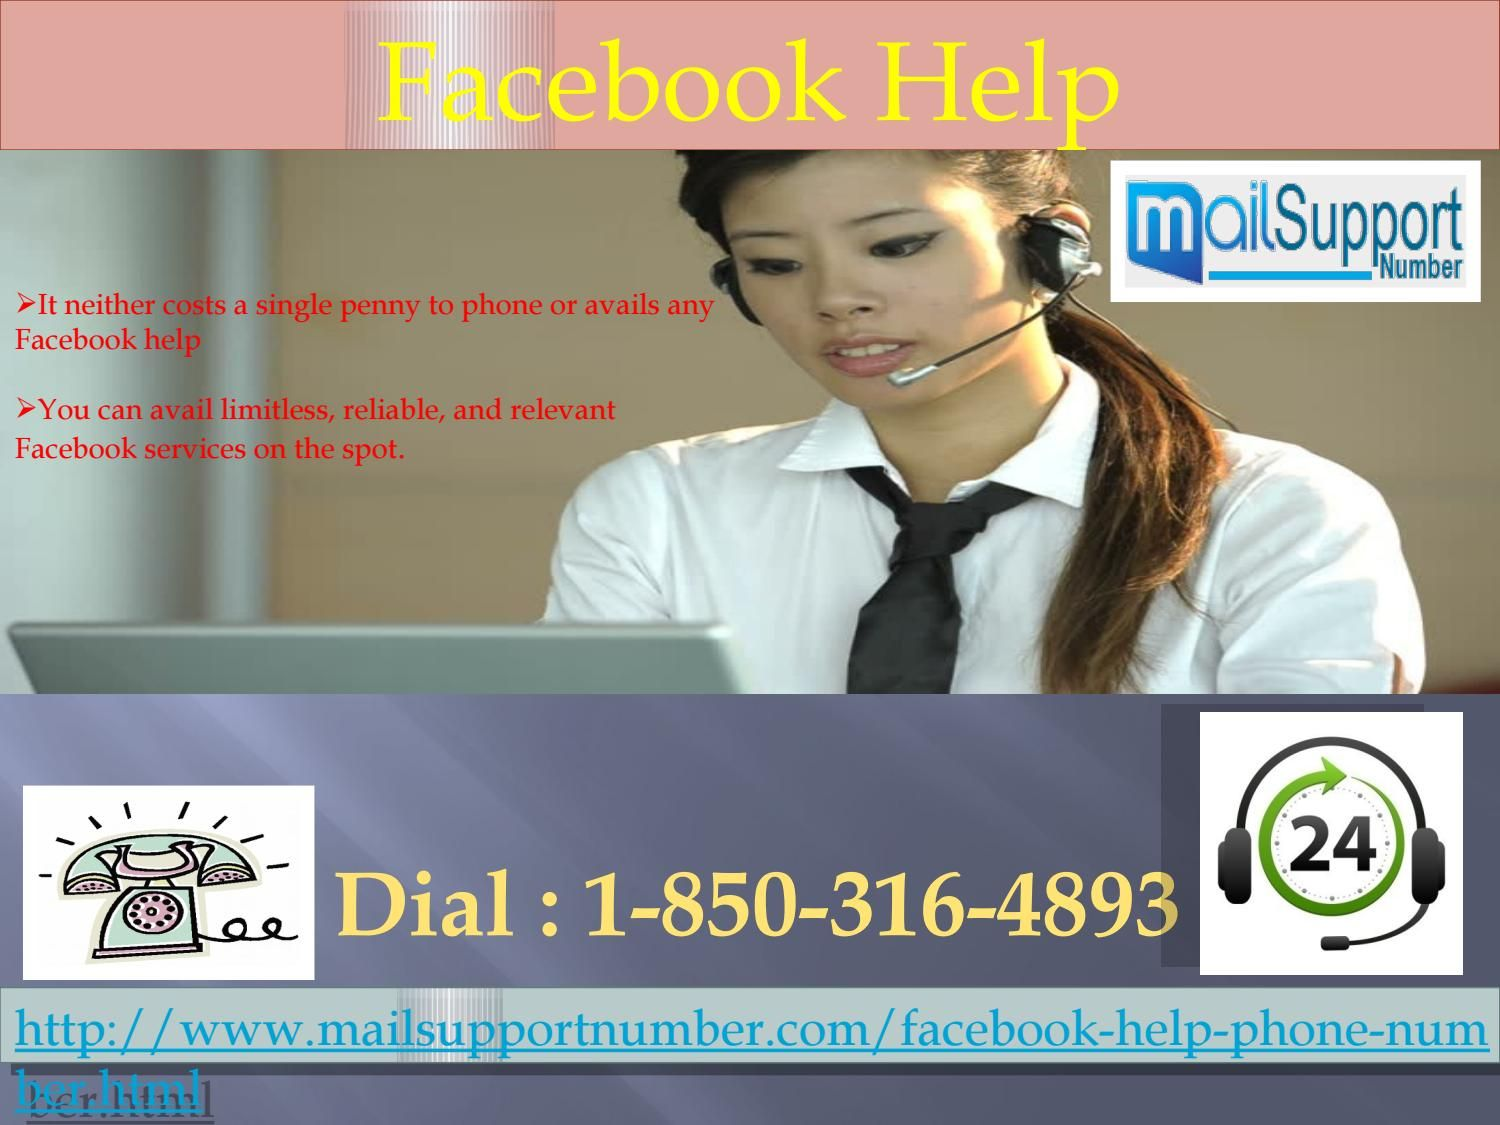 What Are the Merits of calling at 1-850-316-4893 Facebook help?   The primary reason is that it is the toll-free telephone 1-850-316-4893 which is accessible from everywhere. • It neither costs a single penny to phone or avails any Facebook help • You can avail limitless, reliable, and relevant Facebook services on the spot. For More Info Visit Us: http://www.mailsupportnumber.com/facebook-help-phone-number.html